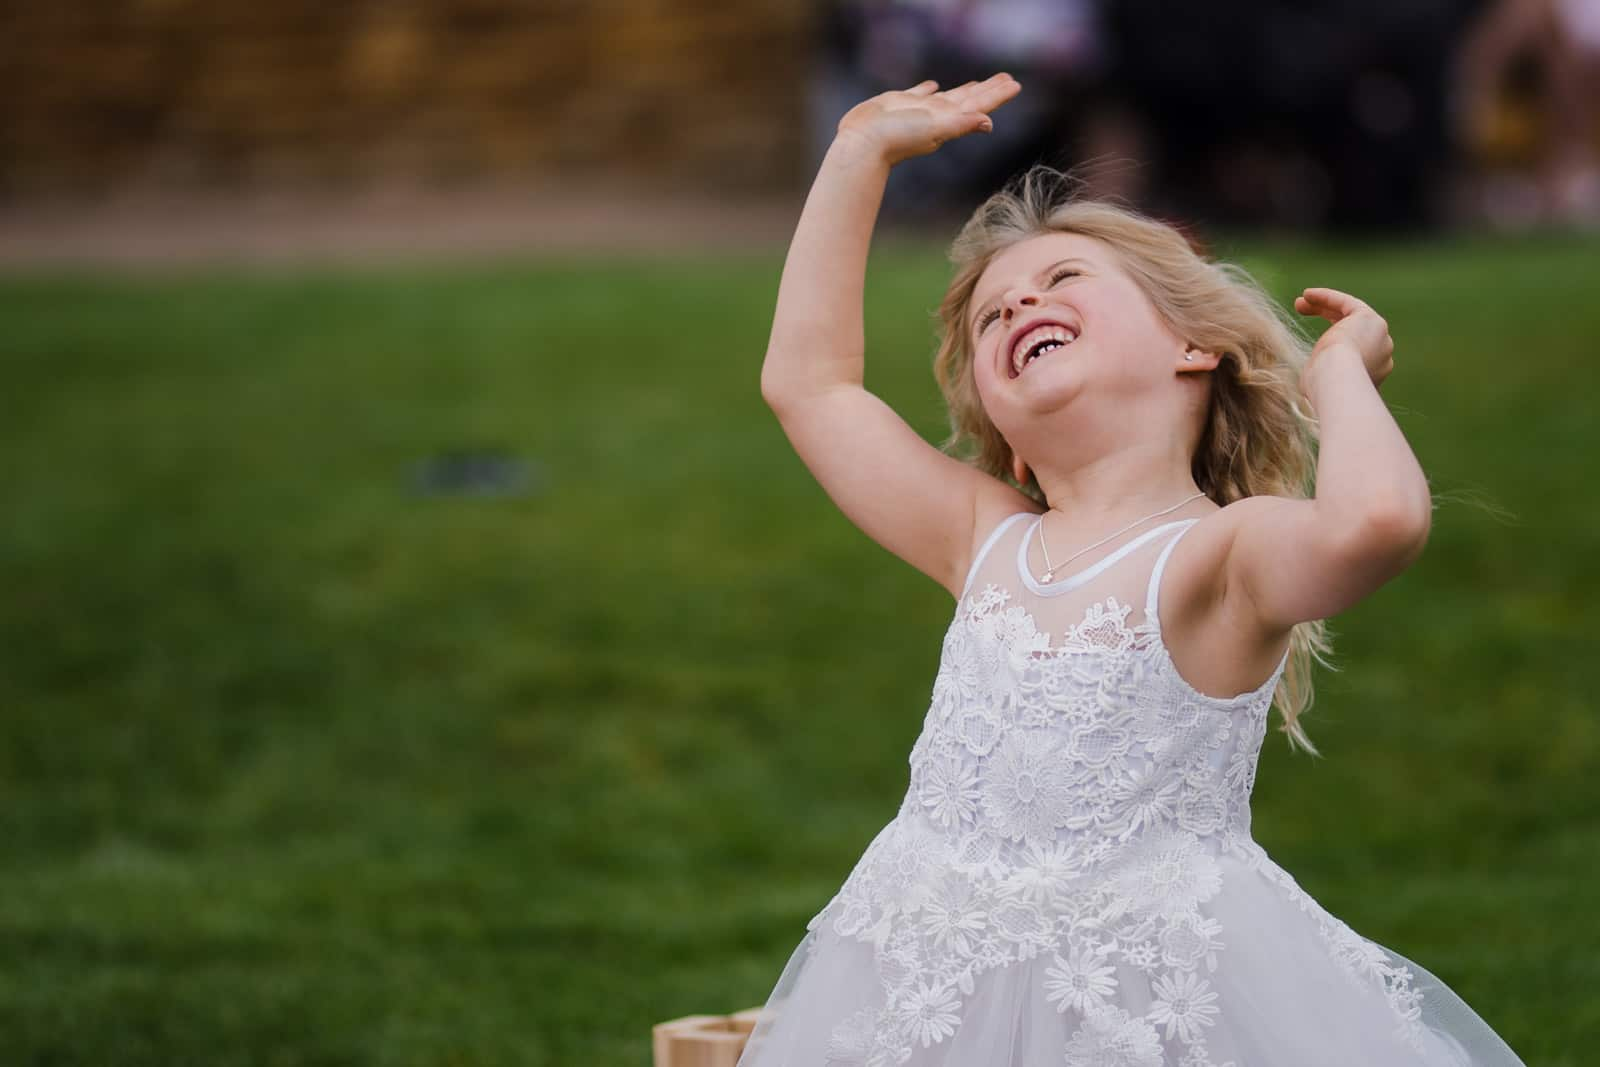 Little girl dancing at a wedding